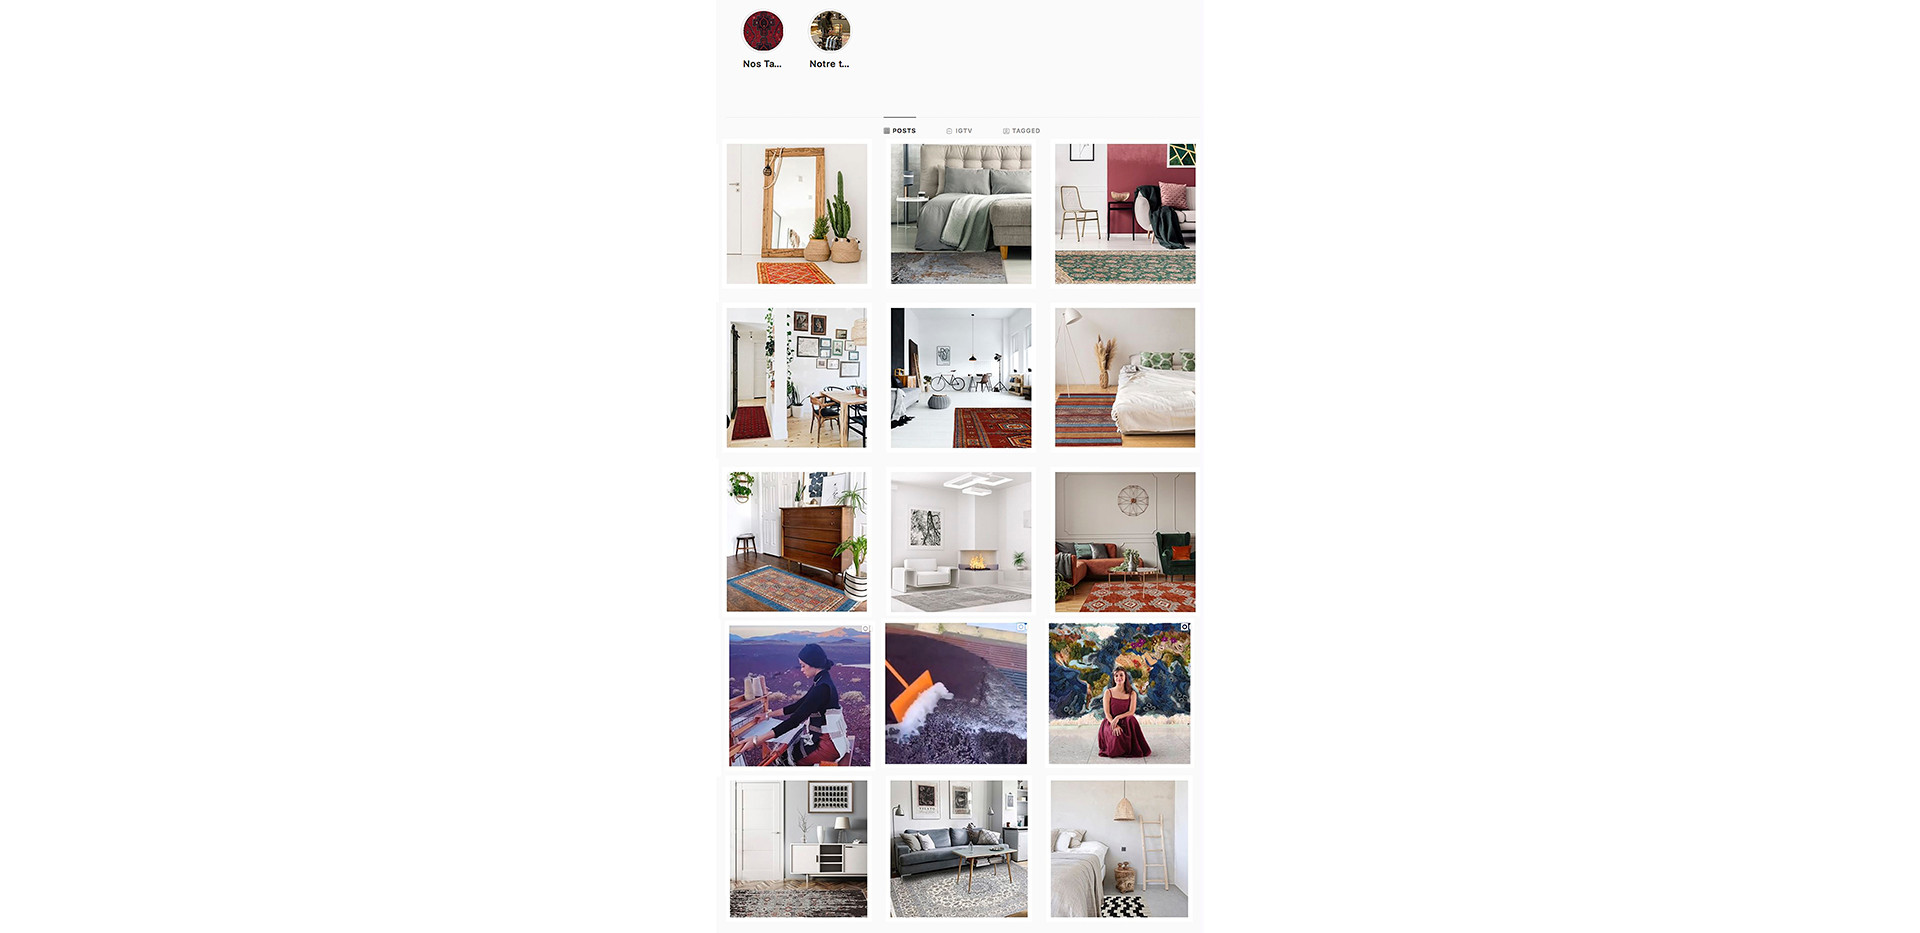 CARPET PALACE INSTAGRAM FEED